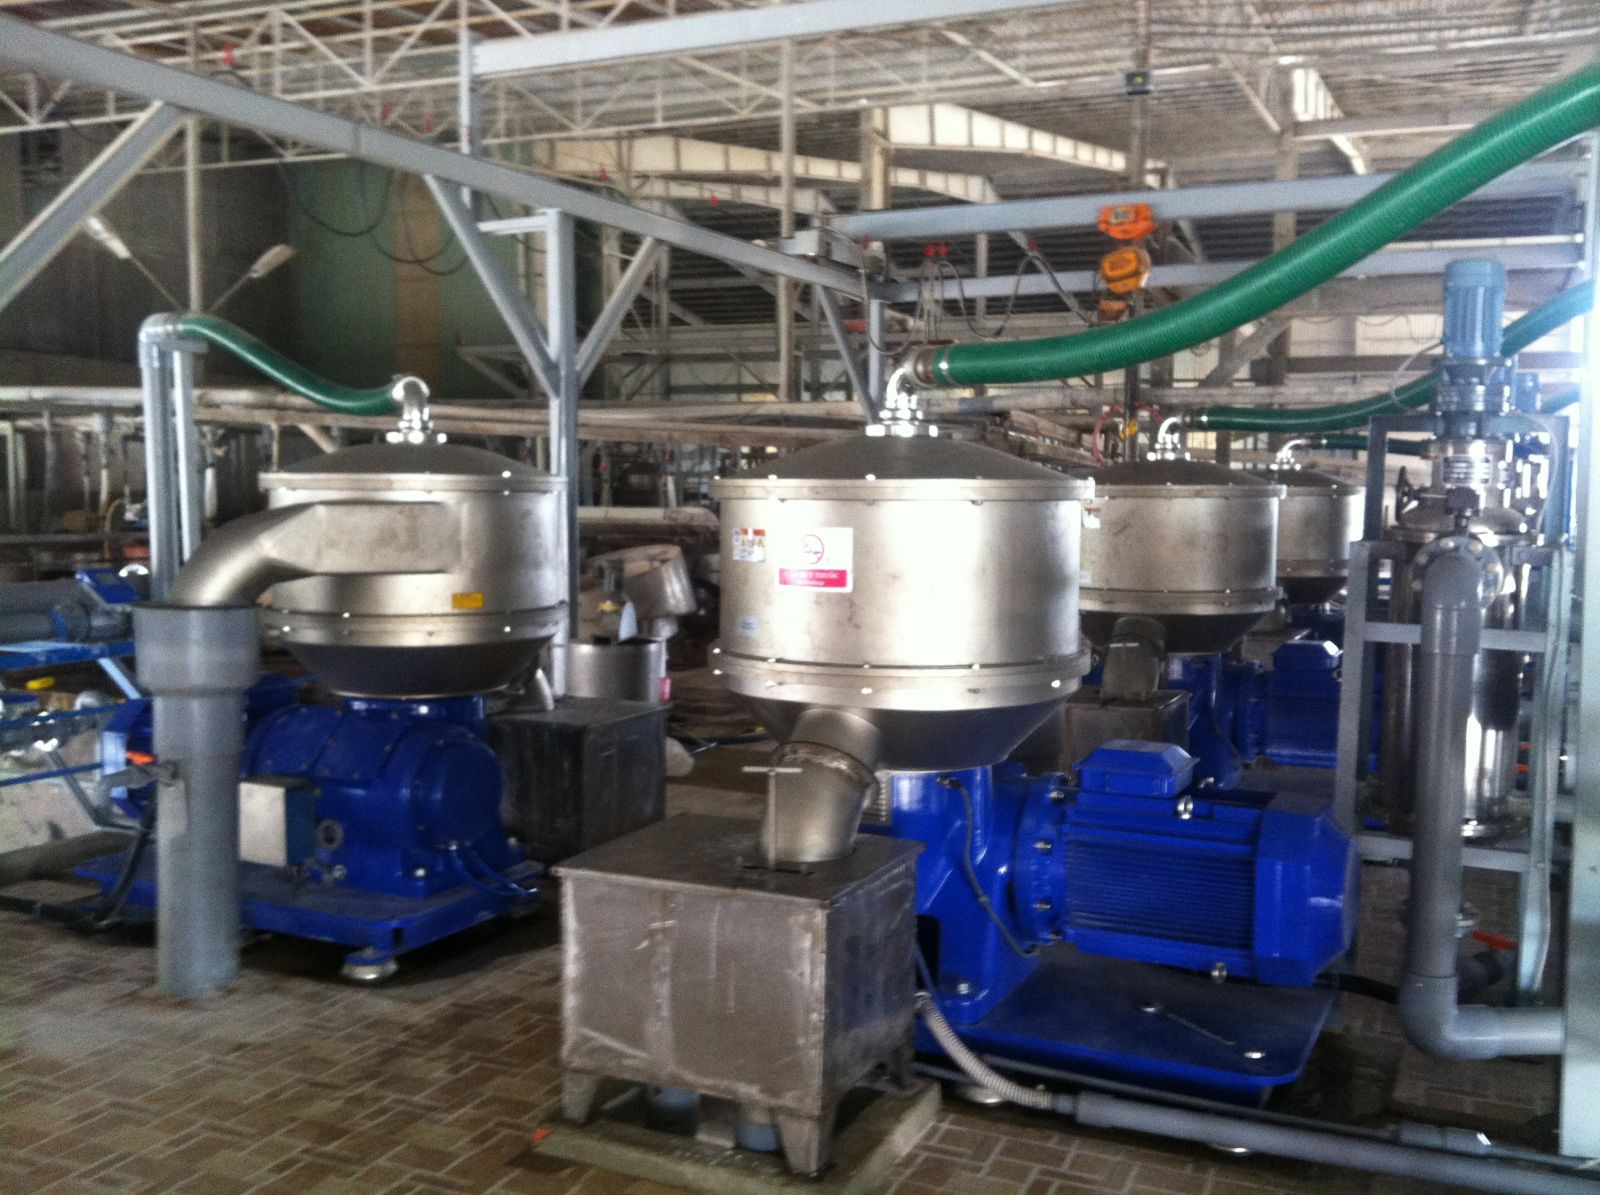 Presentation of TX-712B separator made by Alfa Laval (Sweden) for washing of tapioca starch